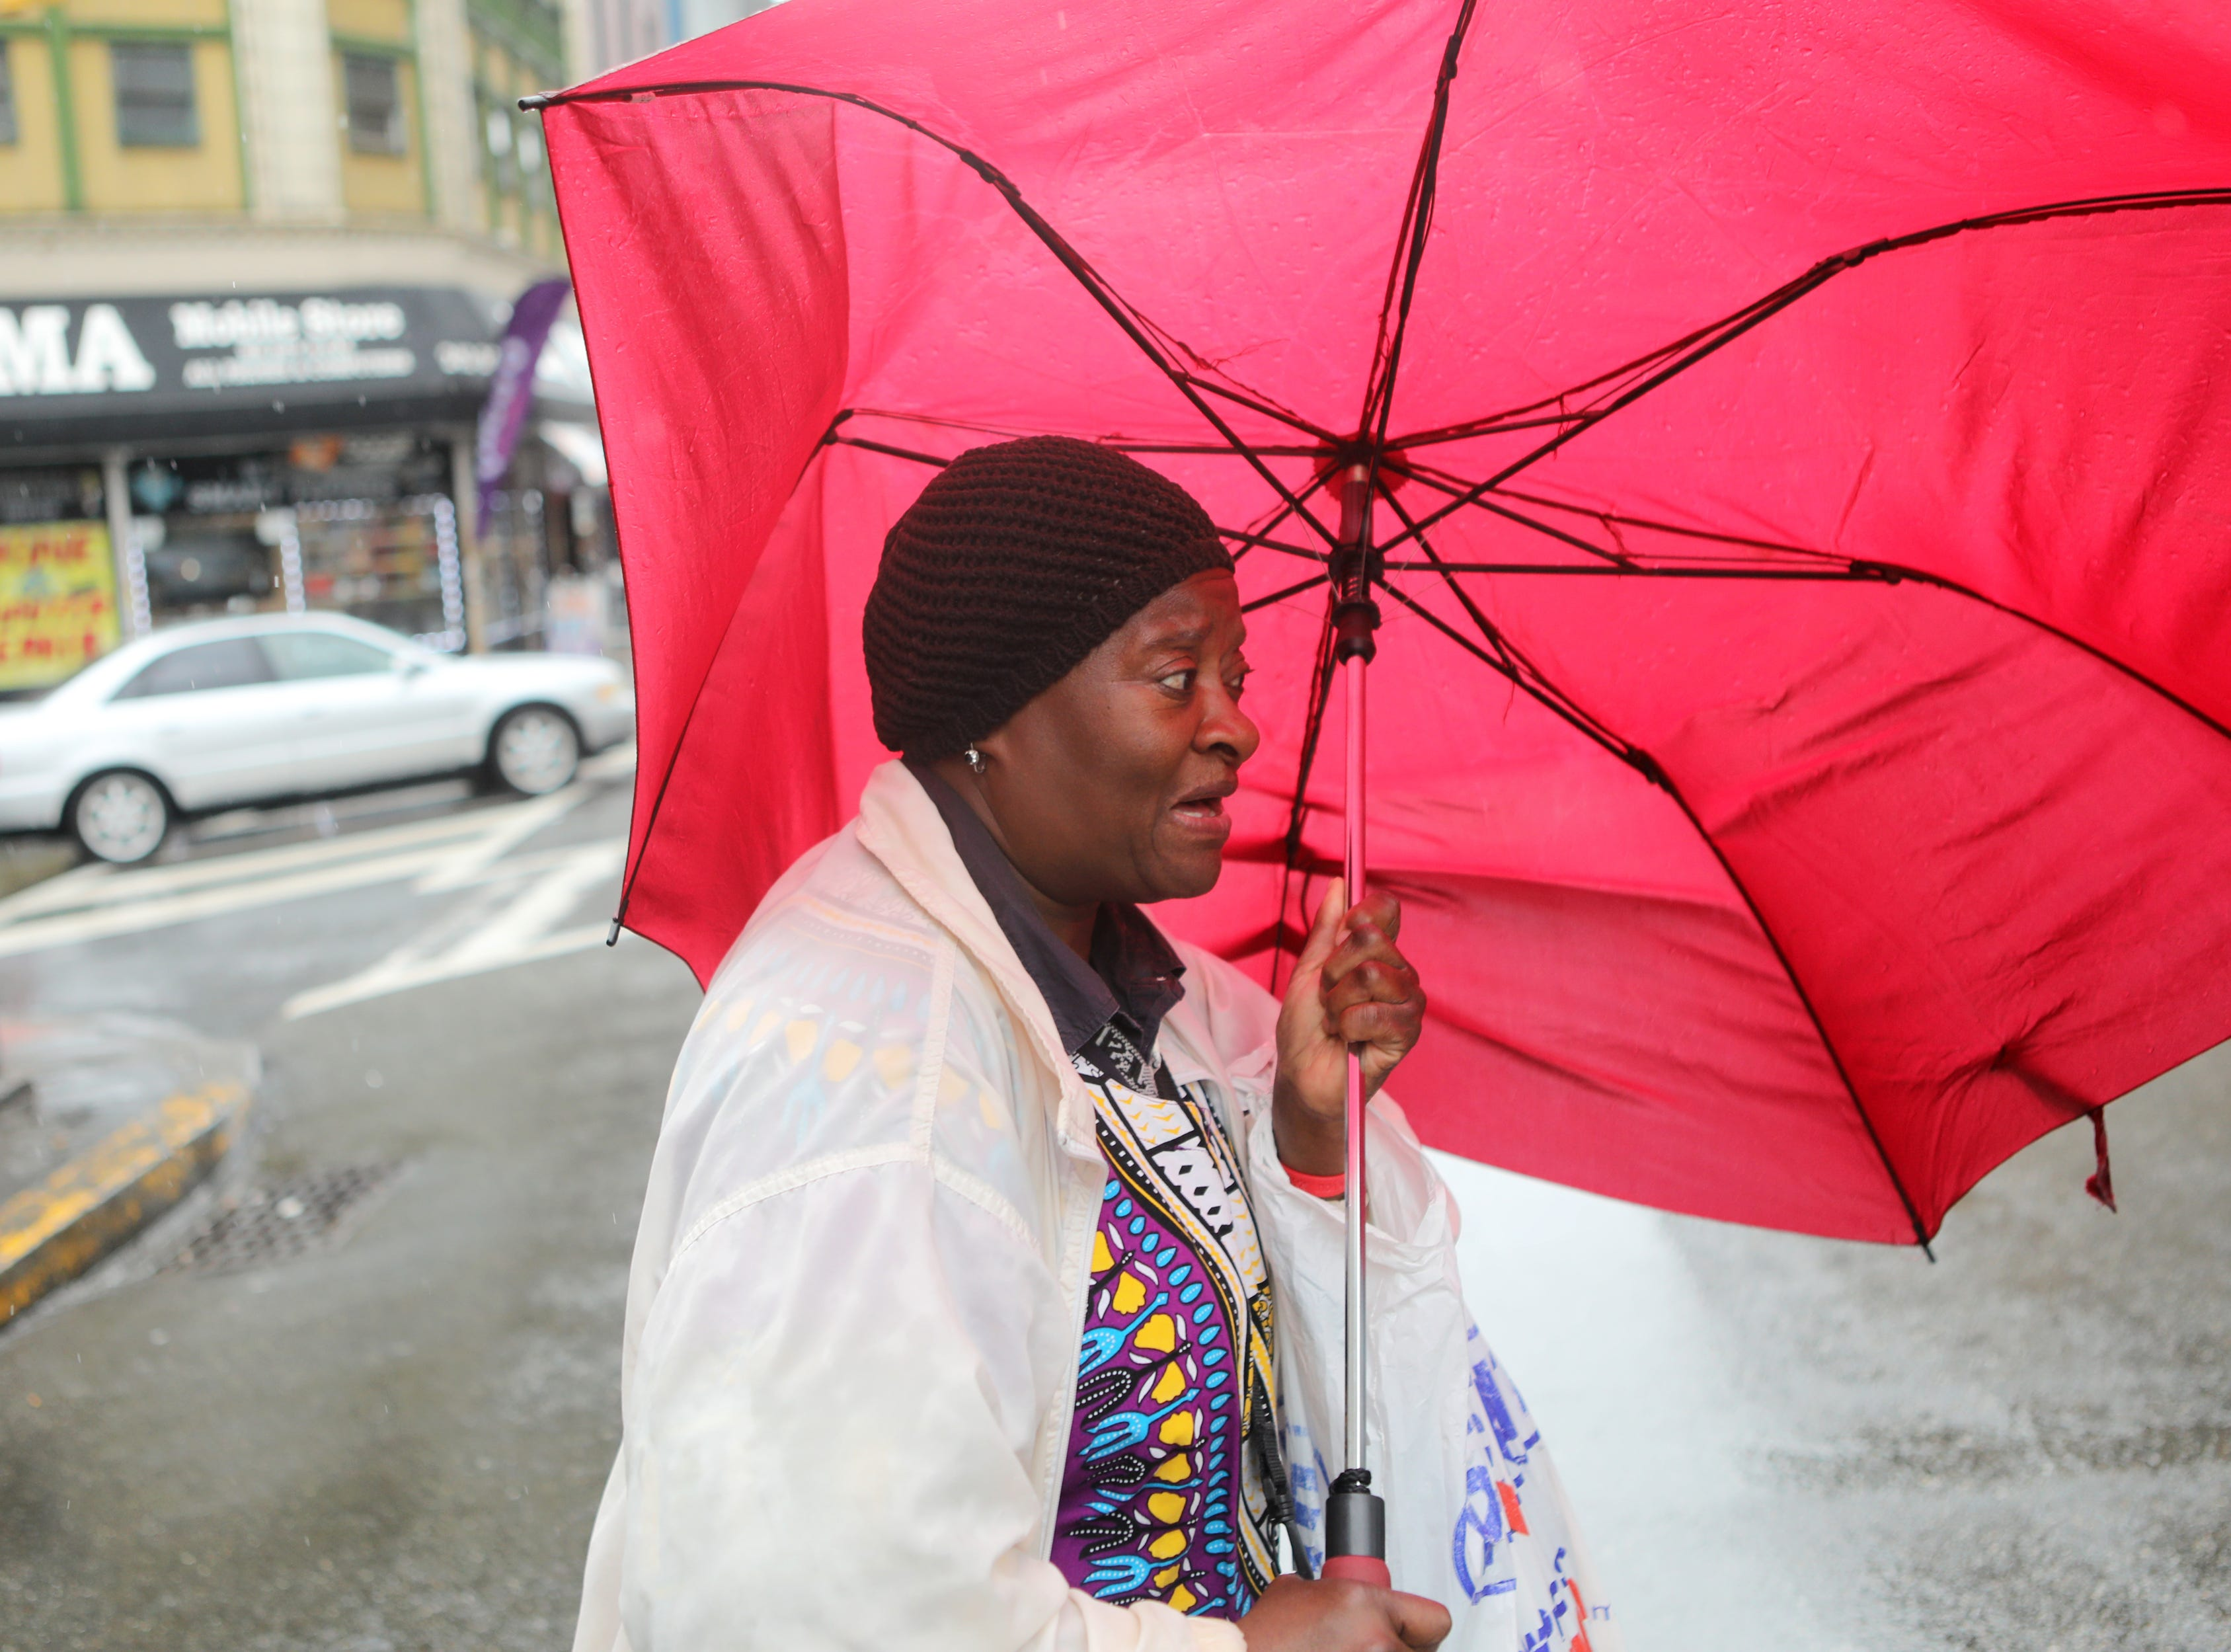 Mae Gregg, of Paterson, reacts as the power of the wind bends her umbrella, while she crosses Main St.  Monday, April, 15, 2019